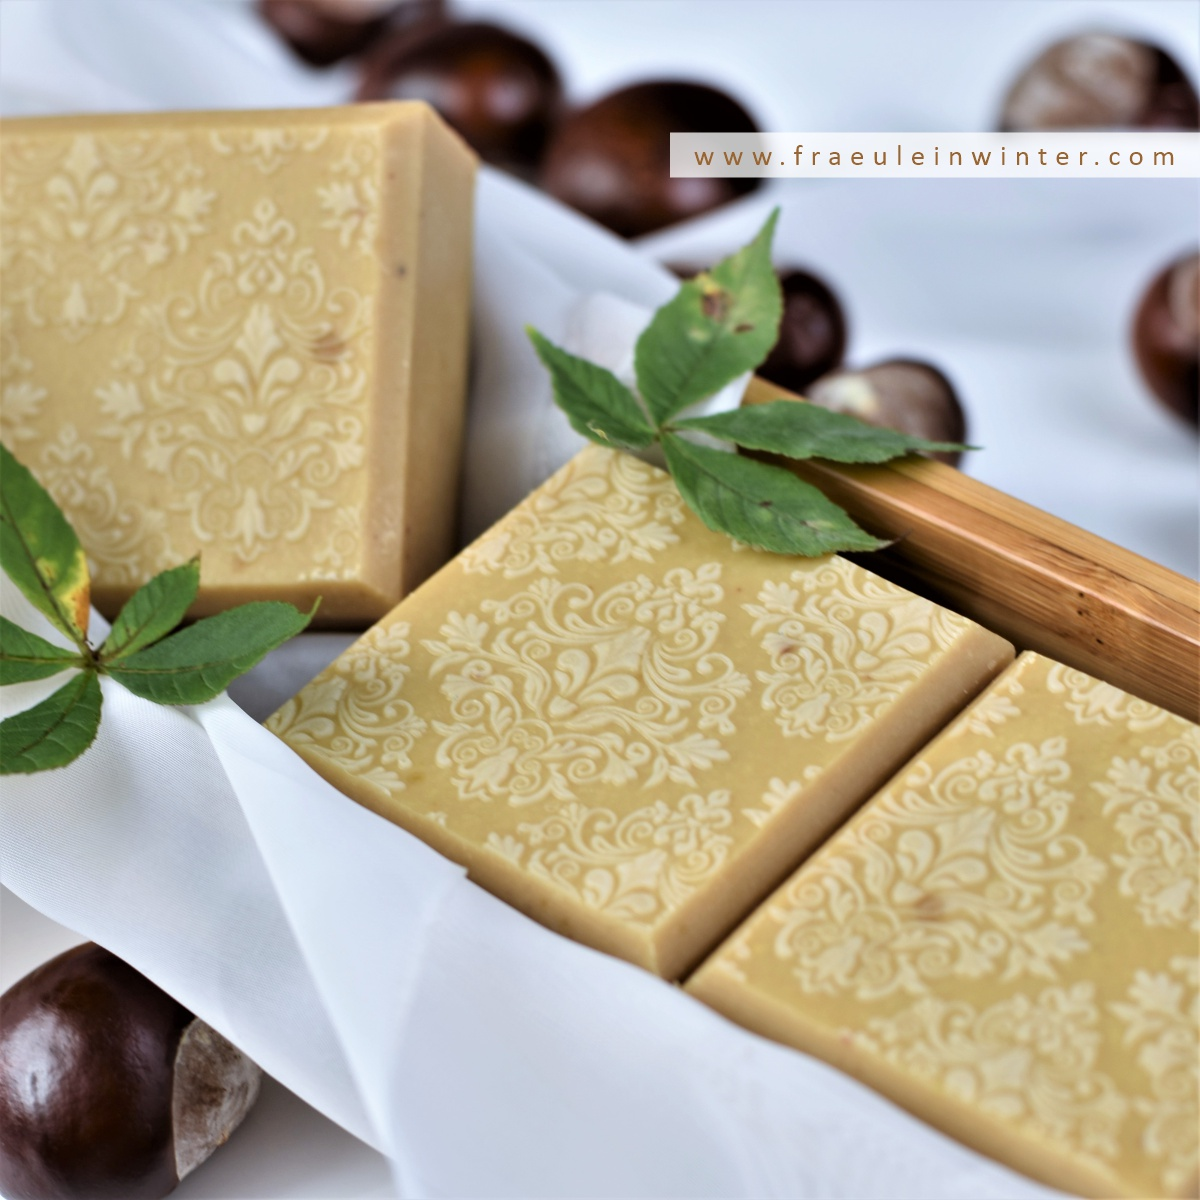 Chestnut Soap